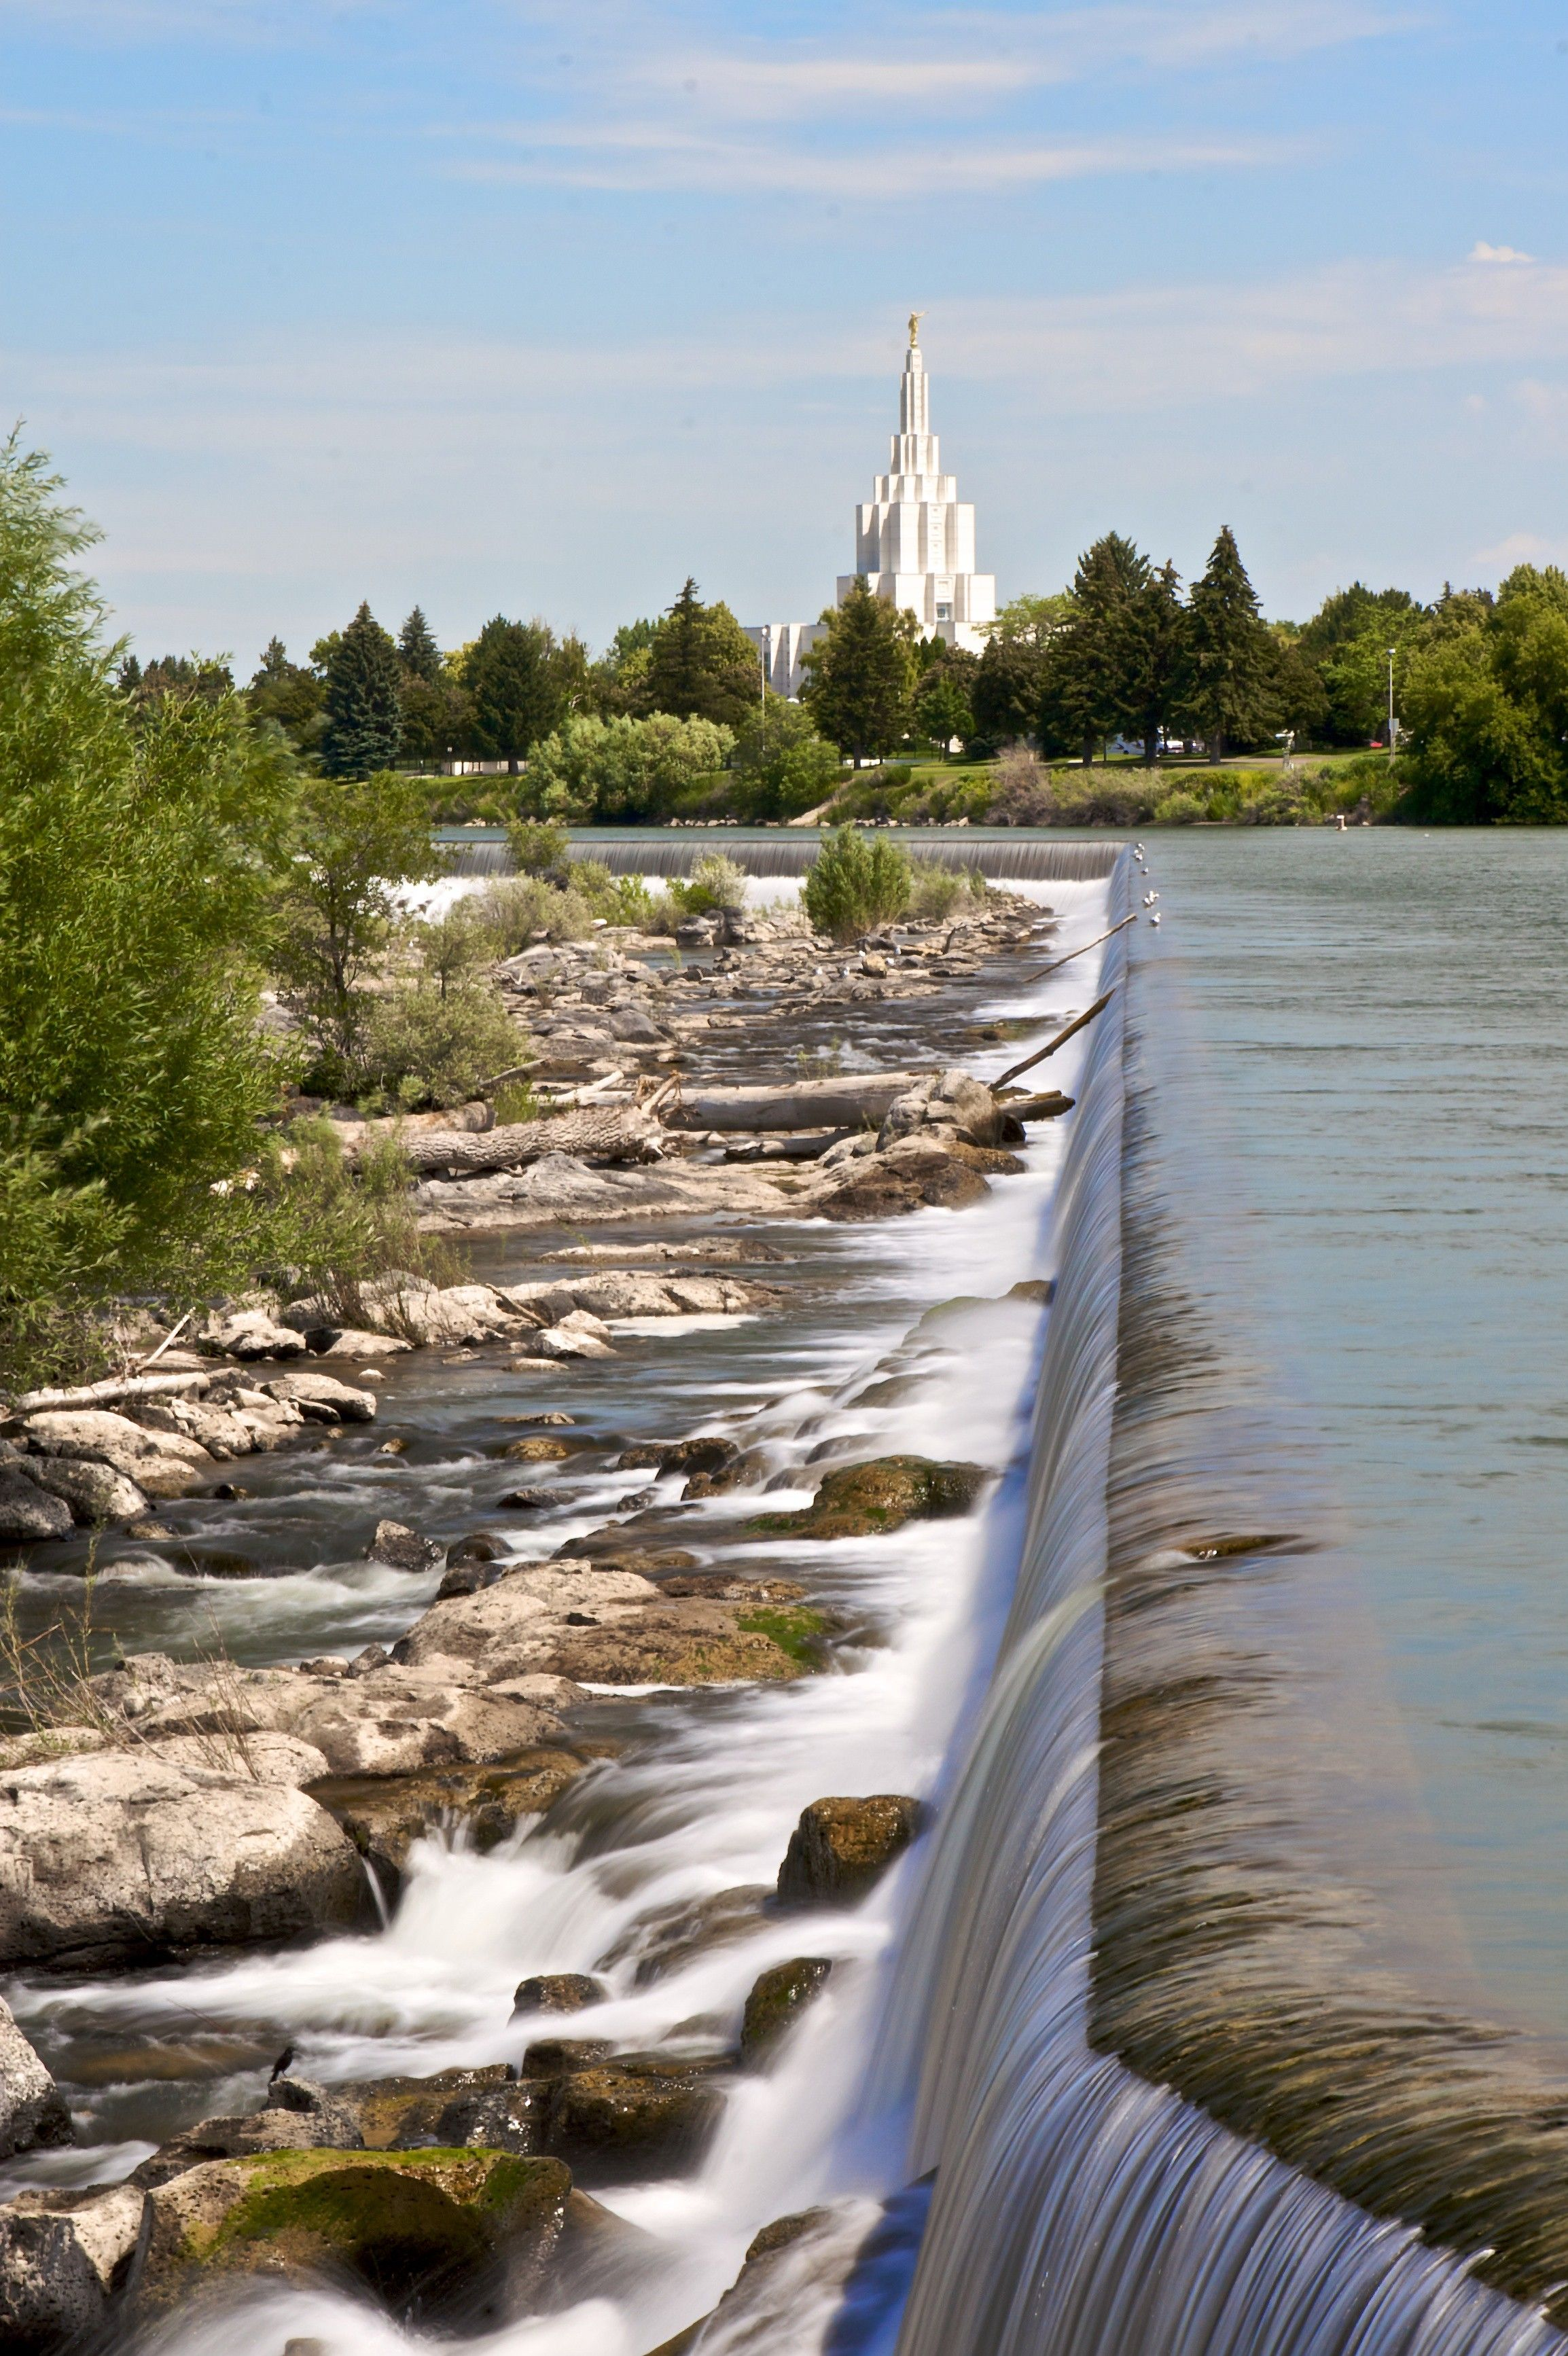 A distant view of the Idaho Falls Idaho Temple, near the waterfalls.